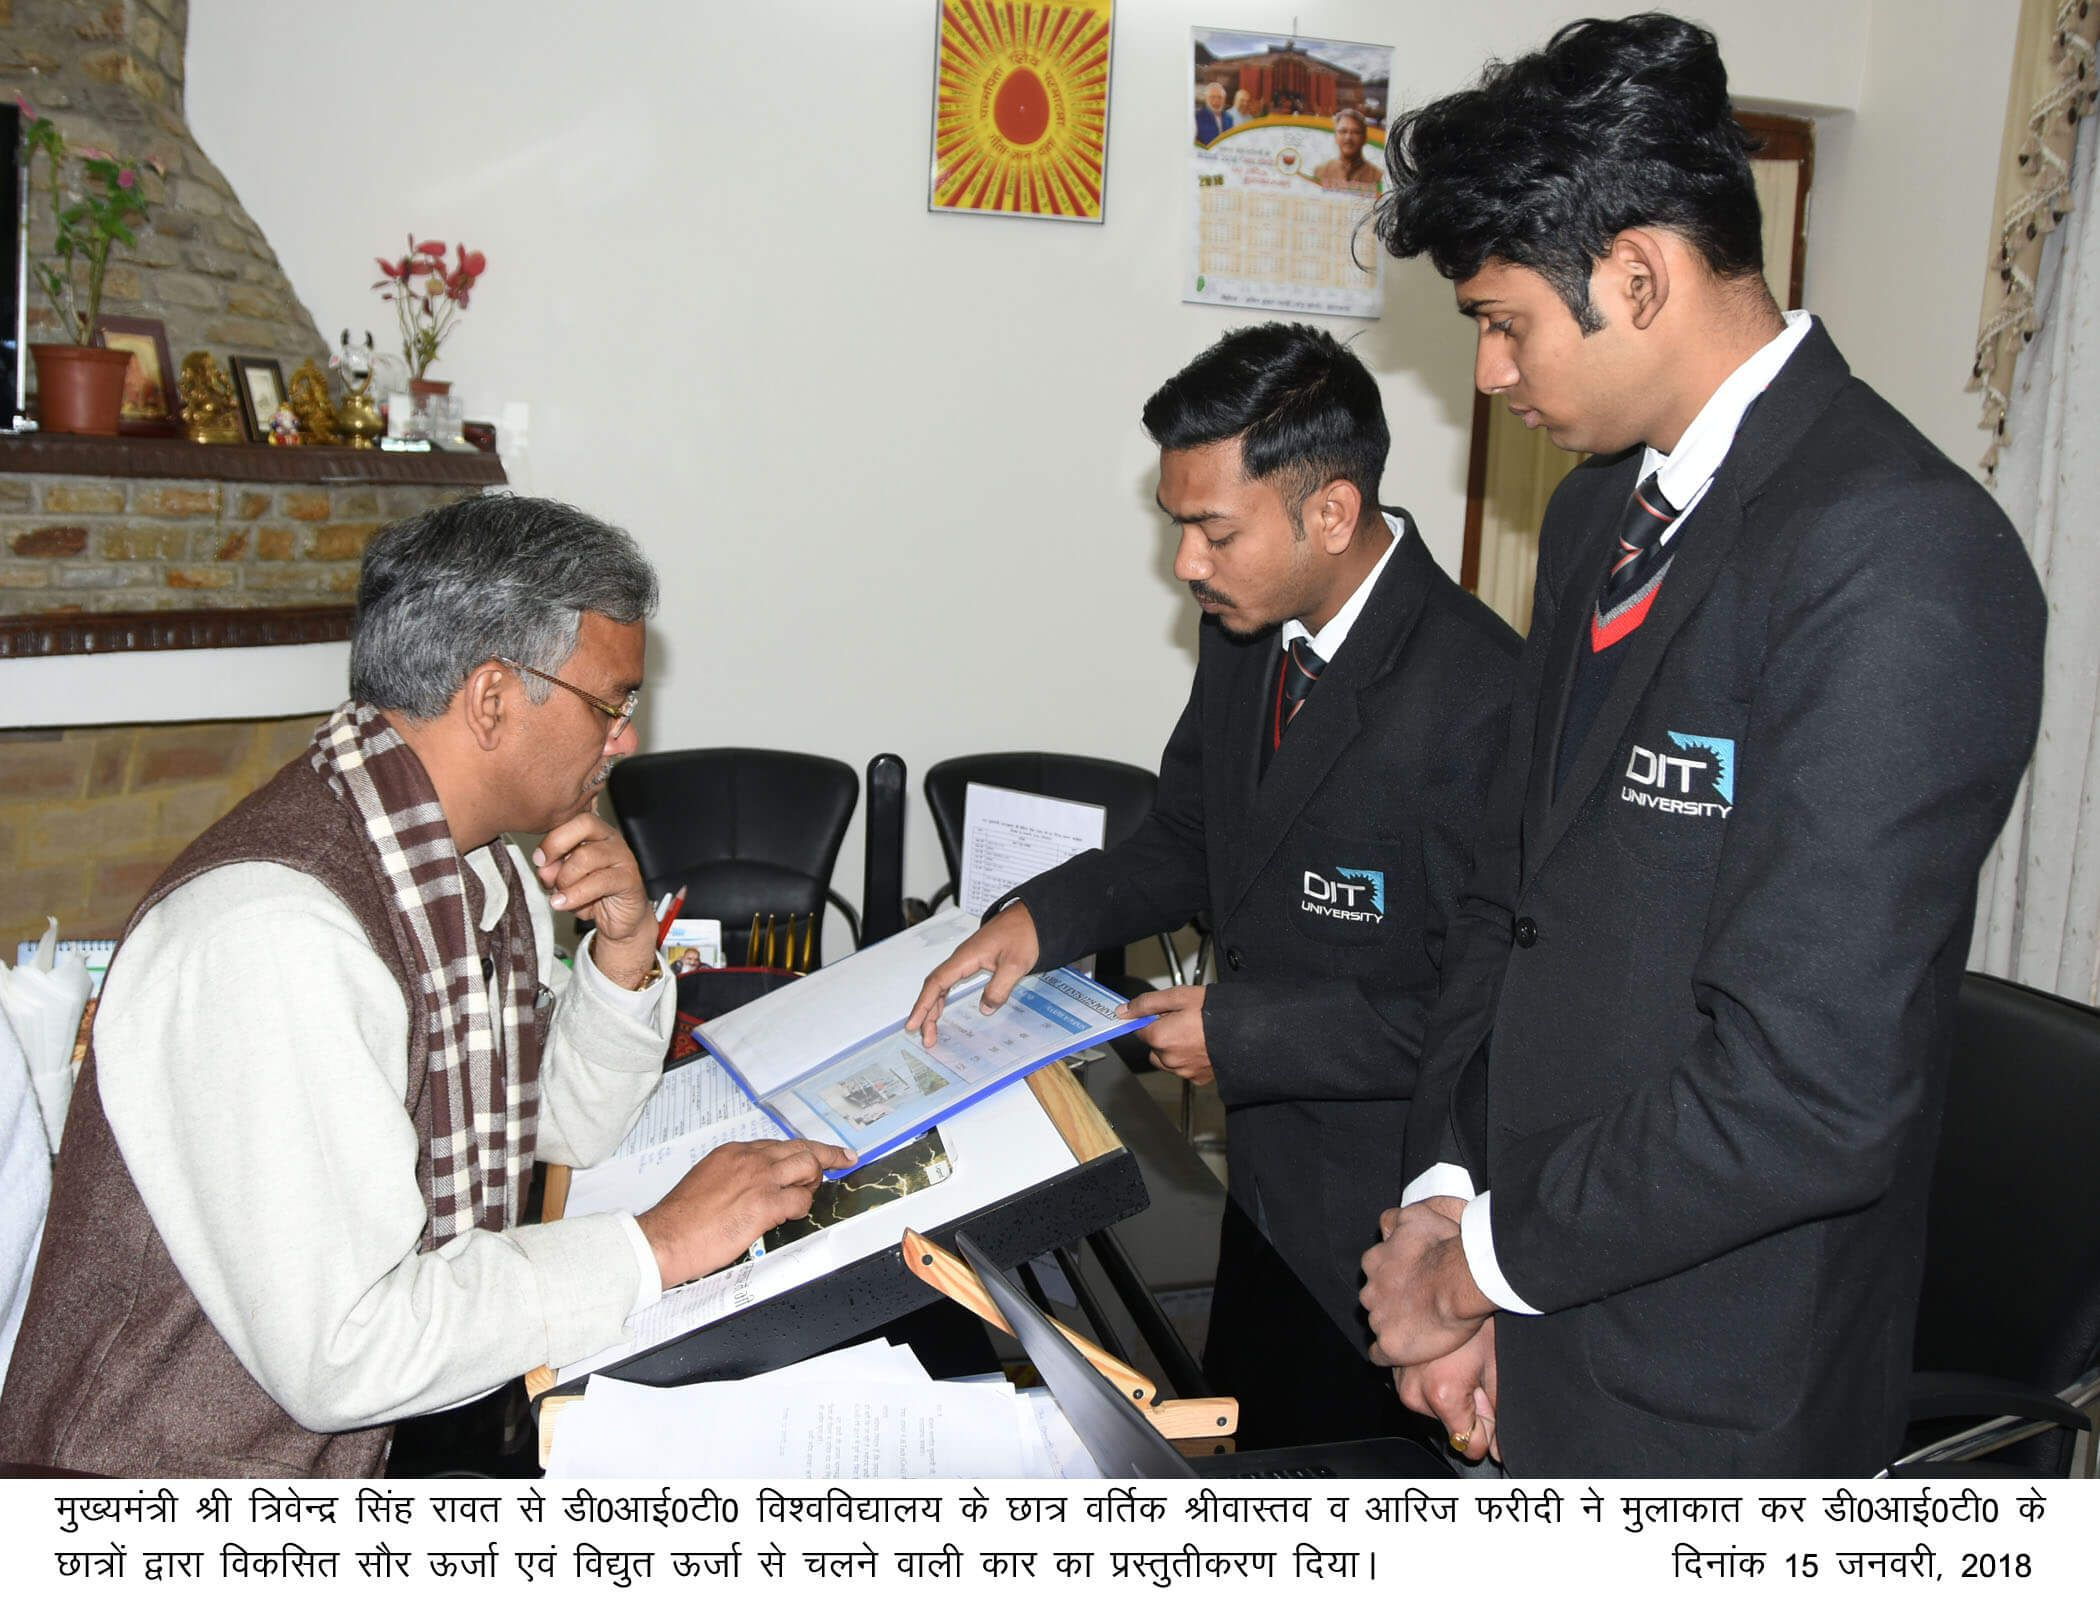 Vartik Shrivastav & Ariz Faridi met Honorable CM, Uttarakand & presented their Hybrid Solar Electric Zero Emission Vehicle Project